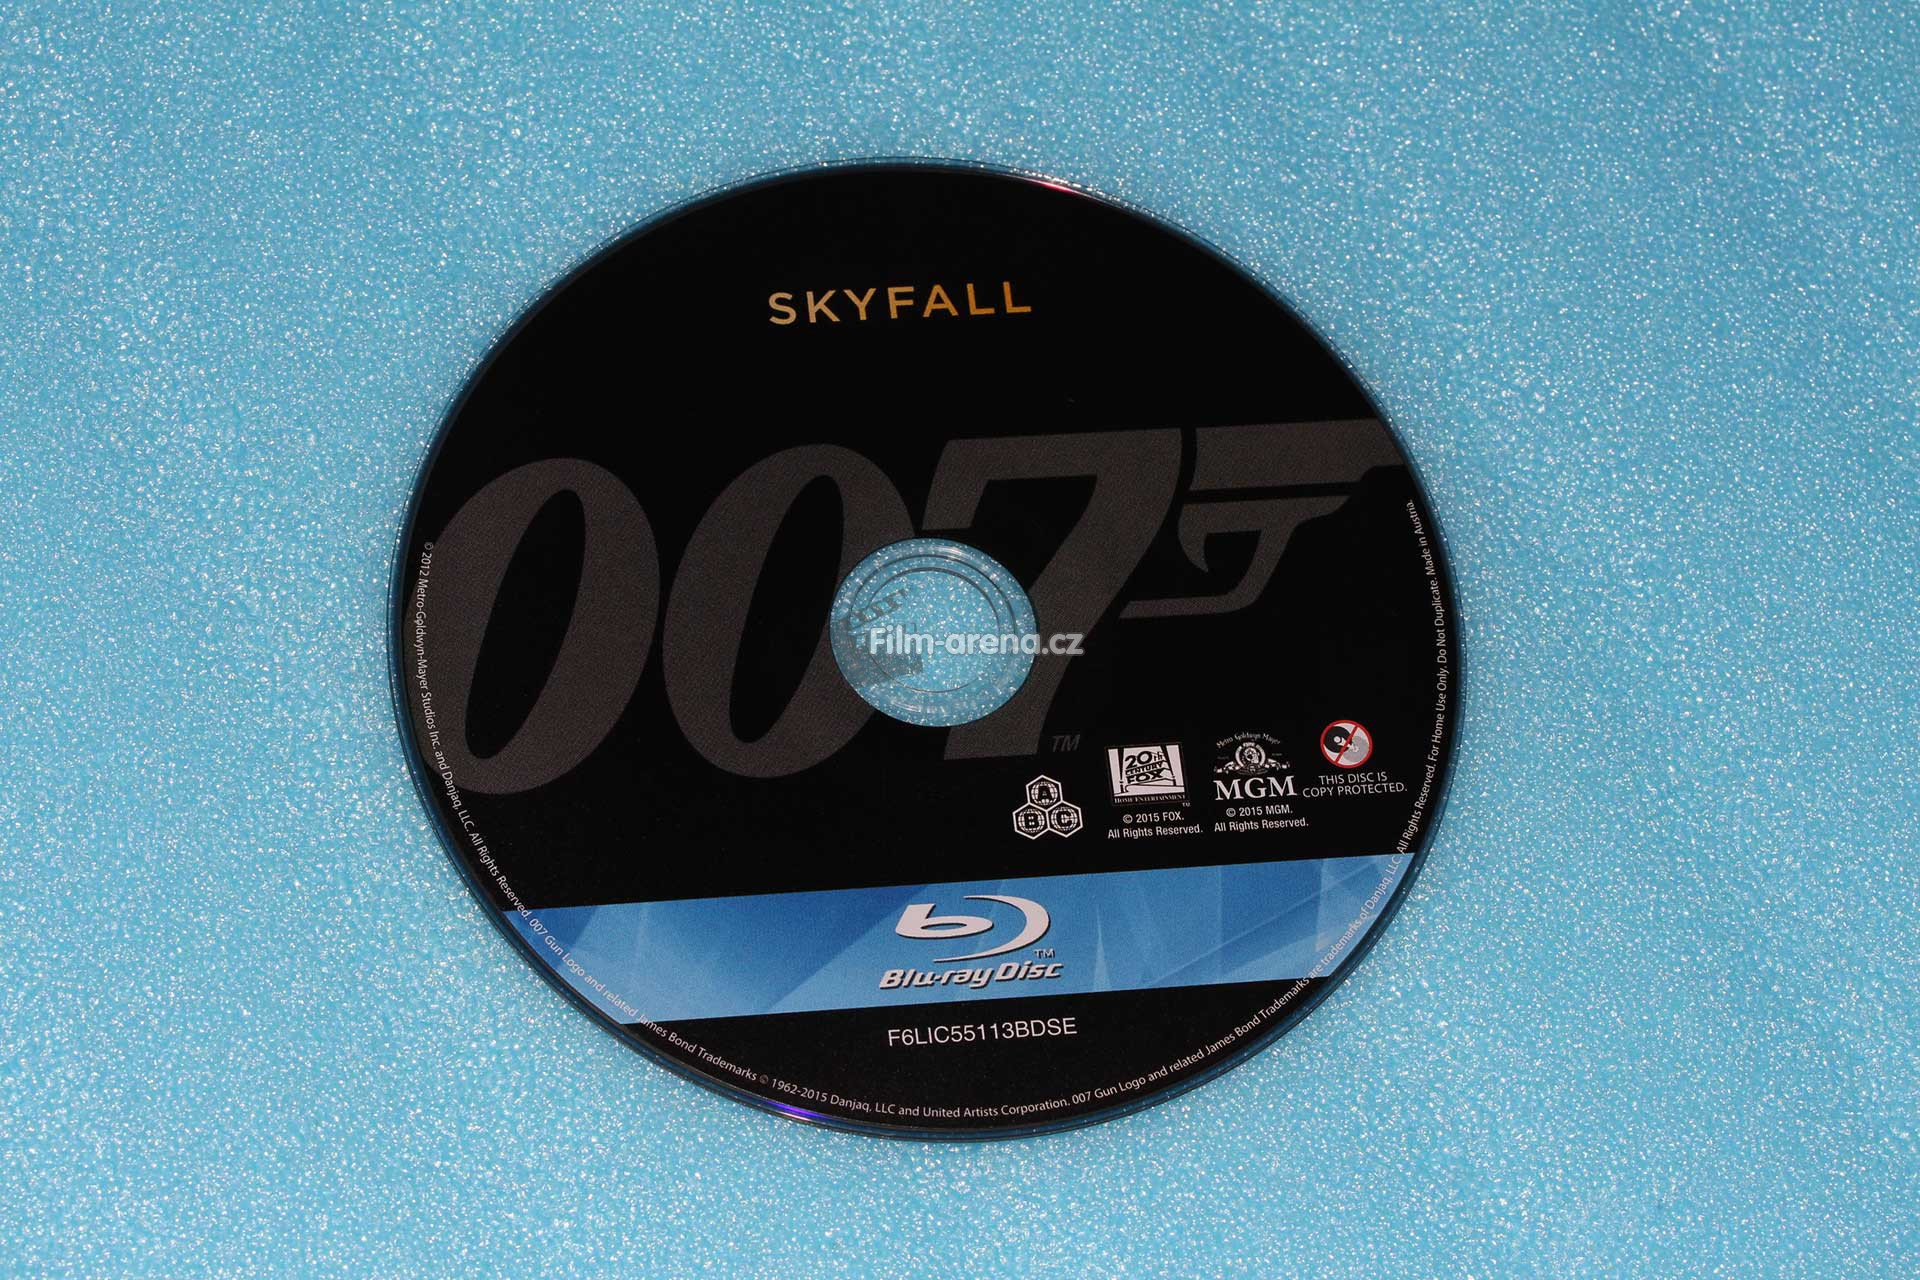 http://www.filmarena.cz/upload/images/nazivo/James_Bond/2012_Skyfall/2012_skyfall_06.jpg